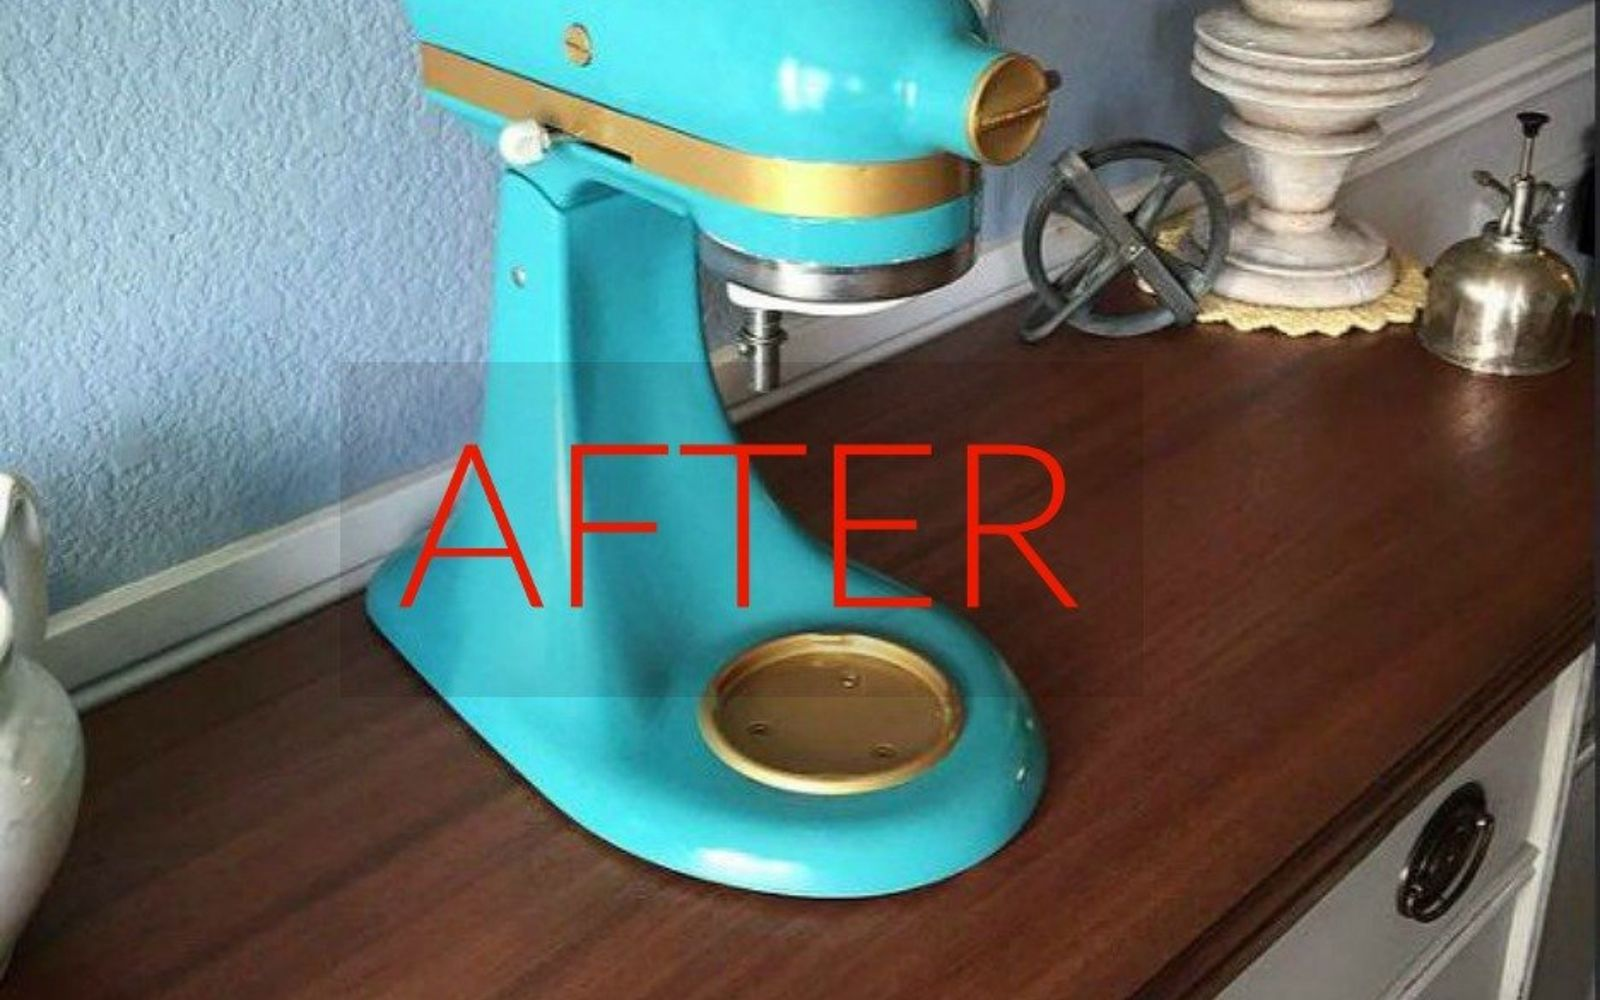 s don t buy new appliances these 9 diy hacks are brilliant, appliances, After A glitz and glammed up stand mixer